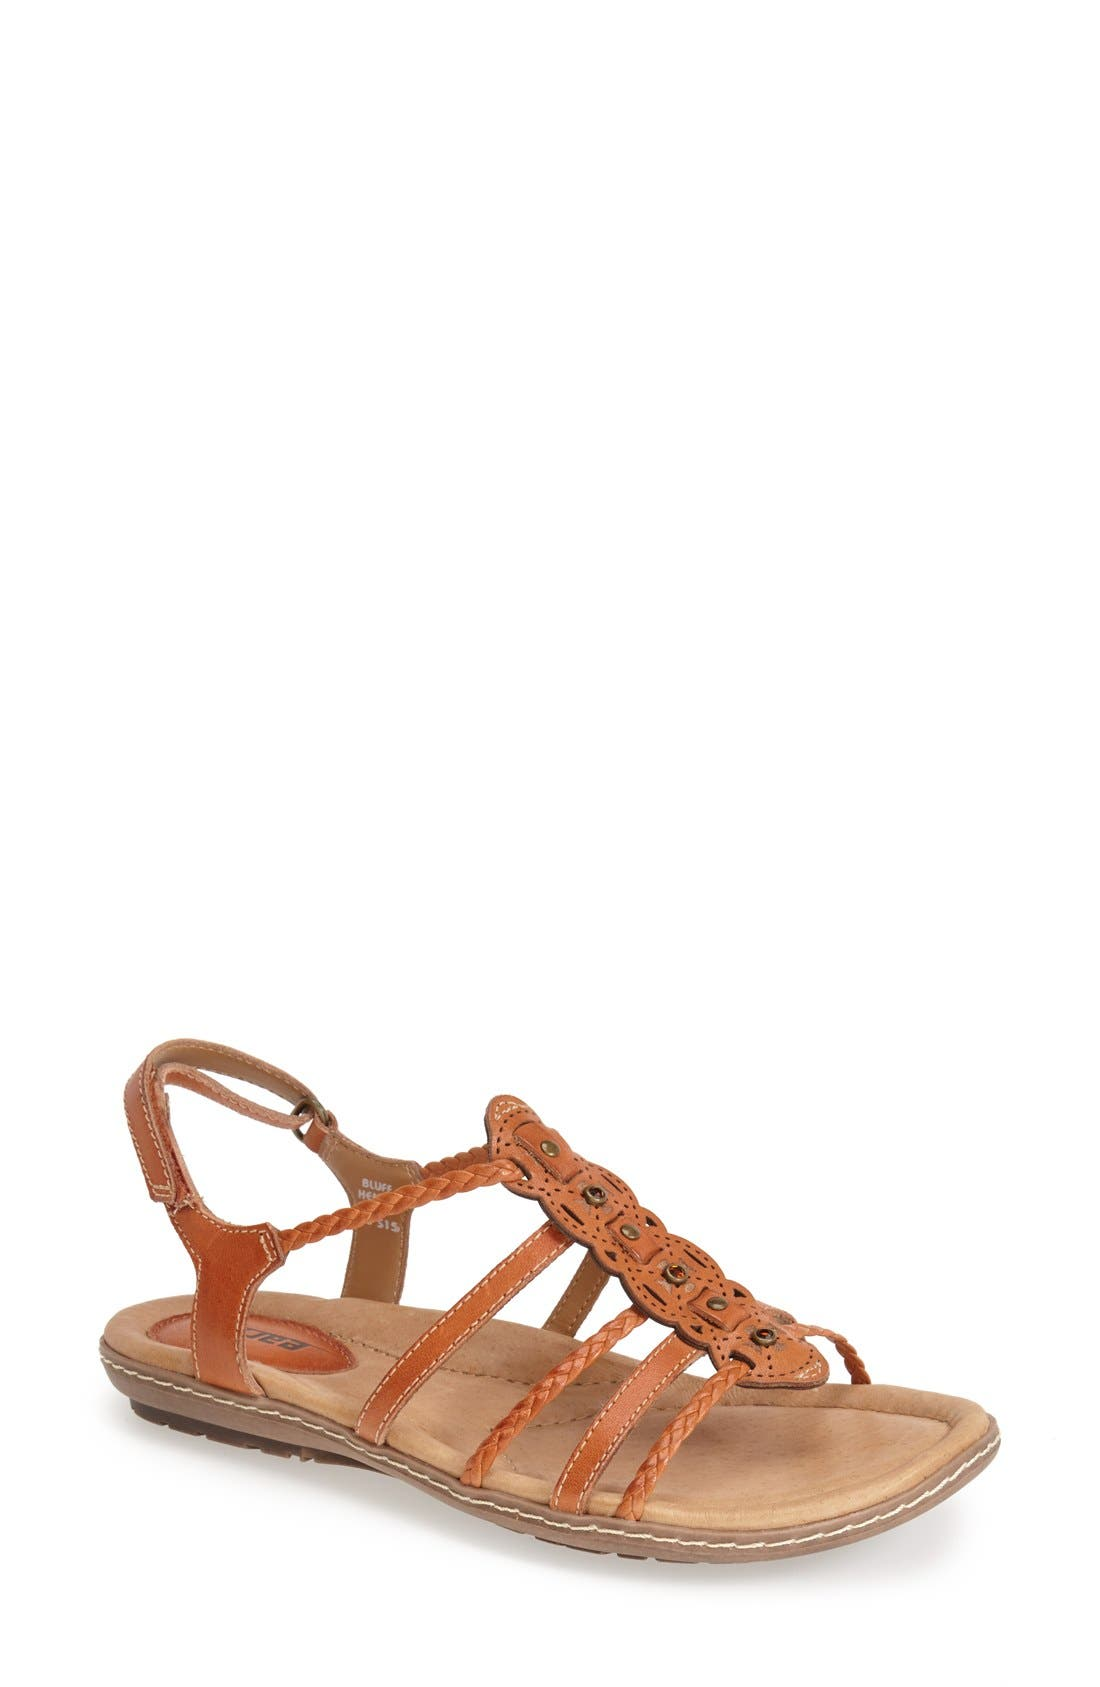 Main Image - Earth® 'Bluff' Sandal